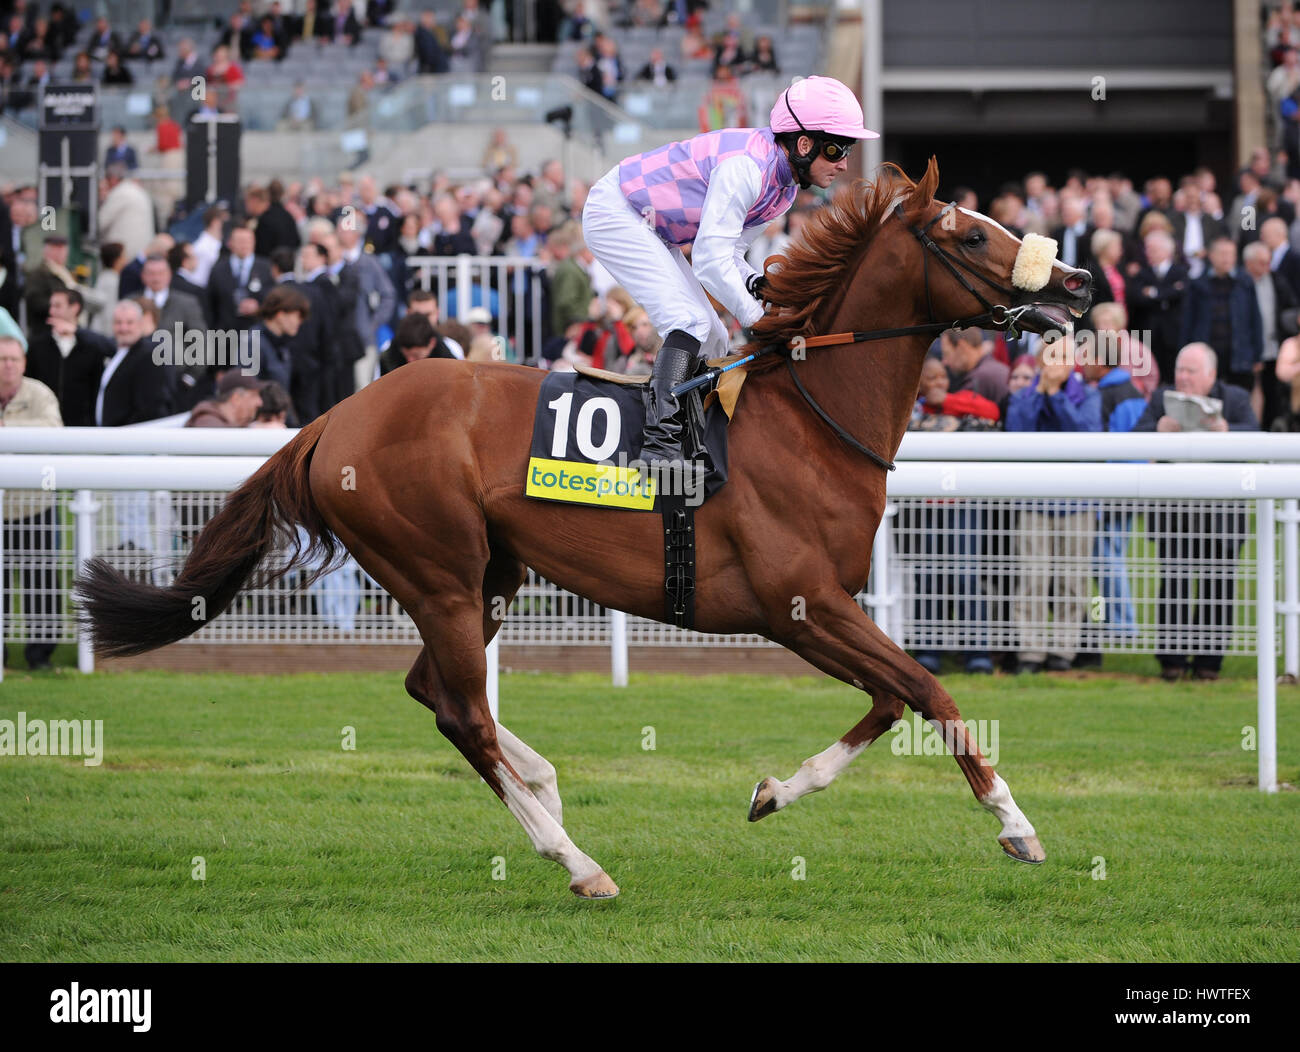 SANS FRONTIERES RIDDEN BY M.KINANE YORK RACECOURSE YORK ENGLAND 14 May 2009 - Stock Image